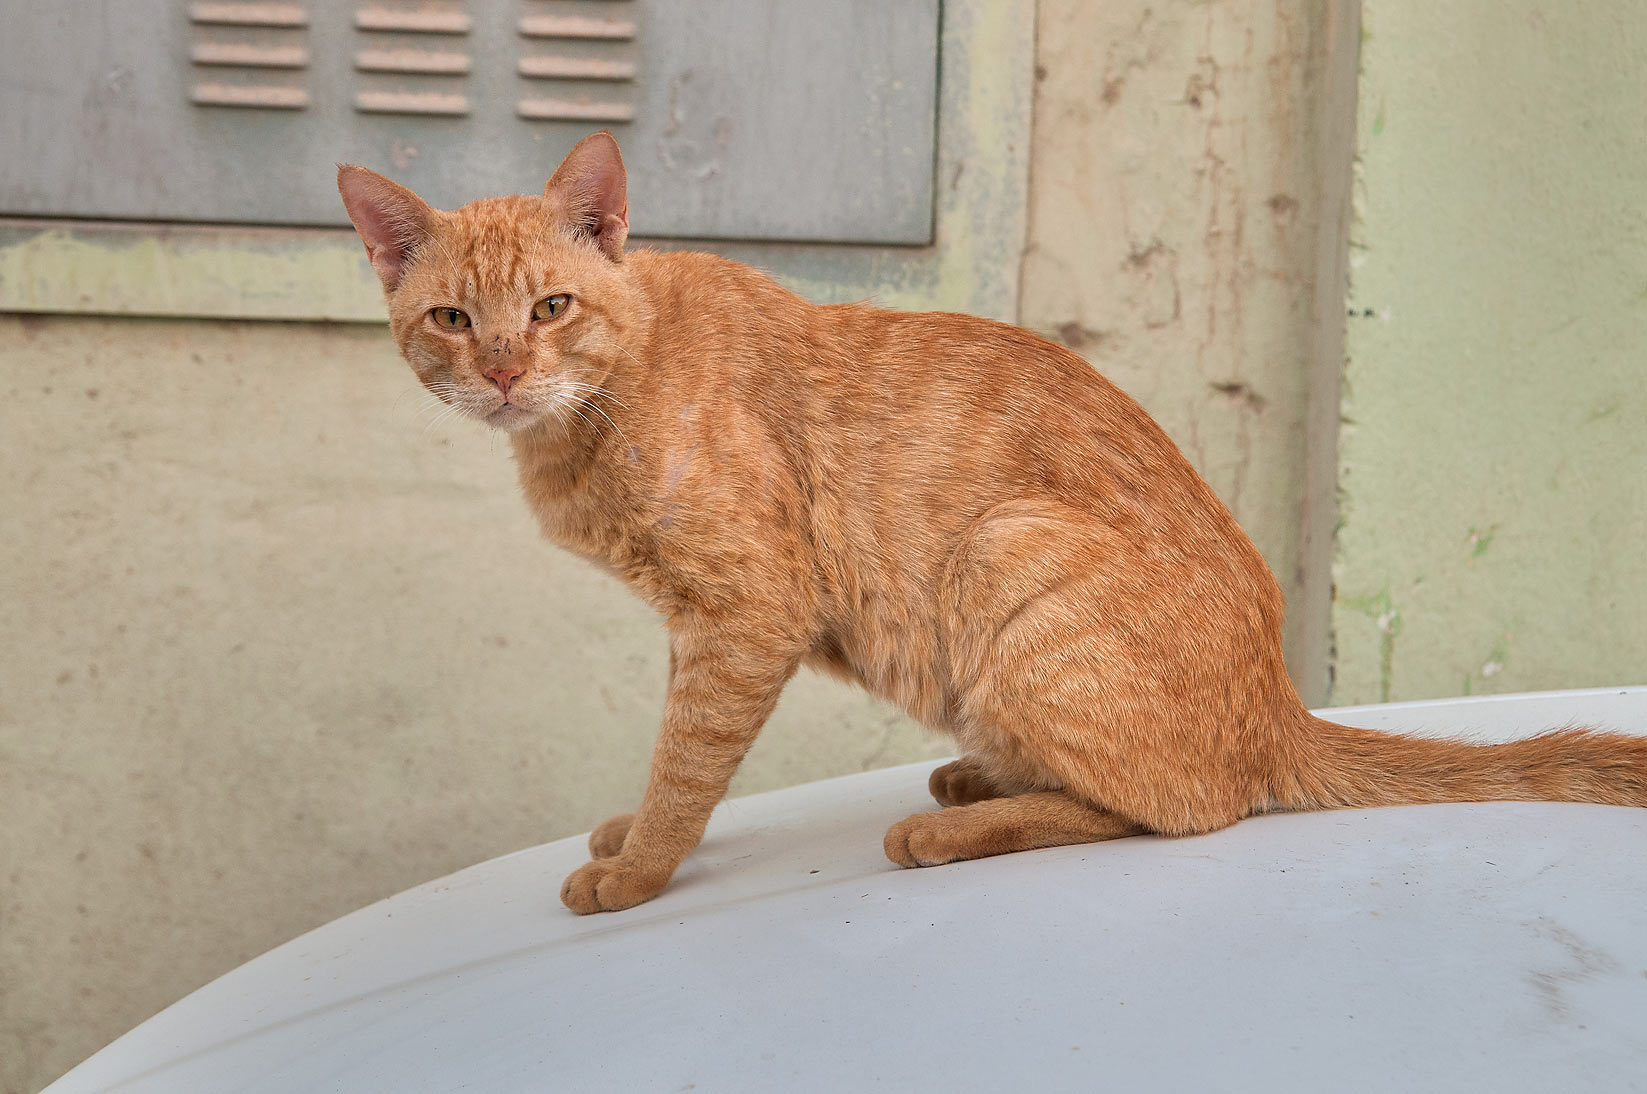 Brown arabian mau cat with scratched nose sitting...St., Musheirib area. Doha, Qatar